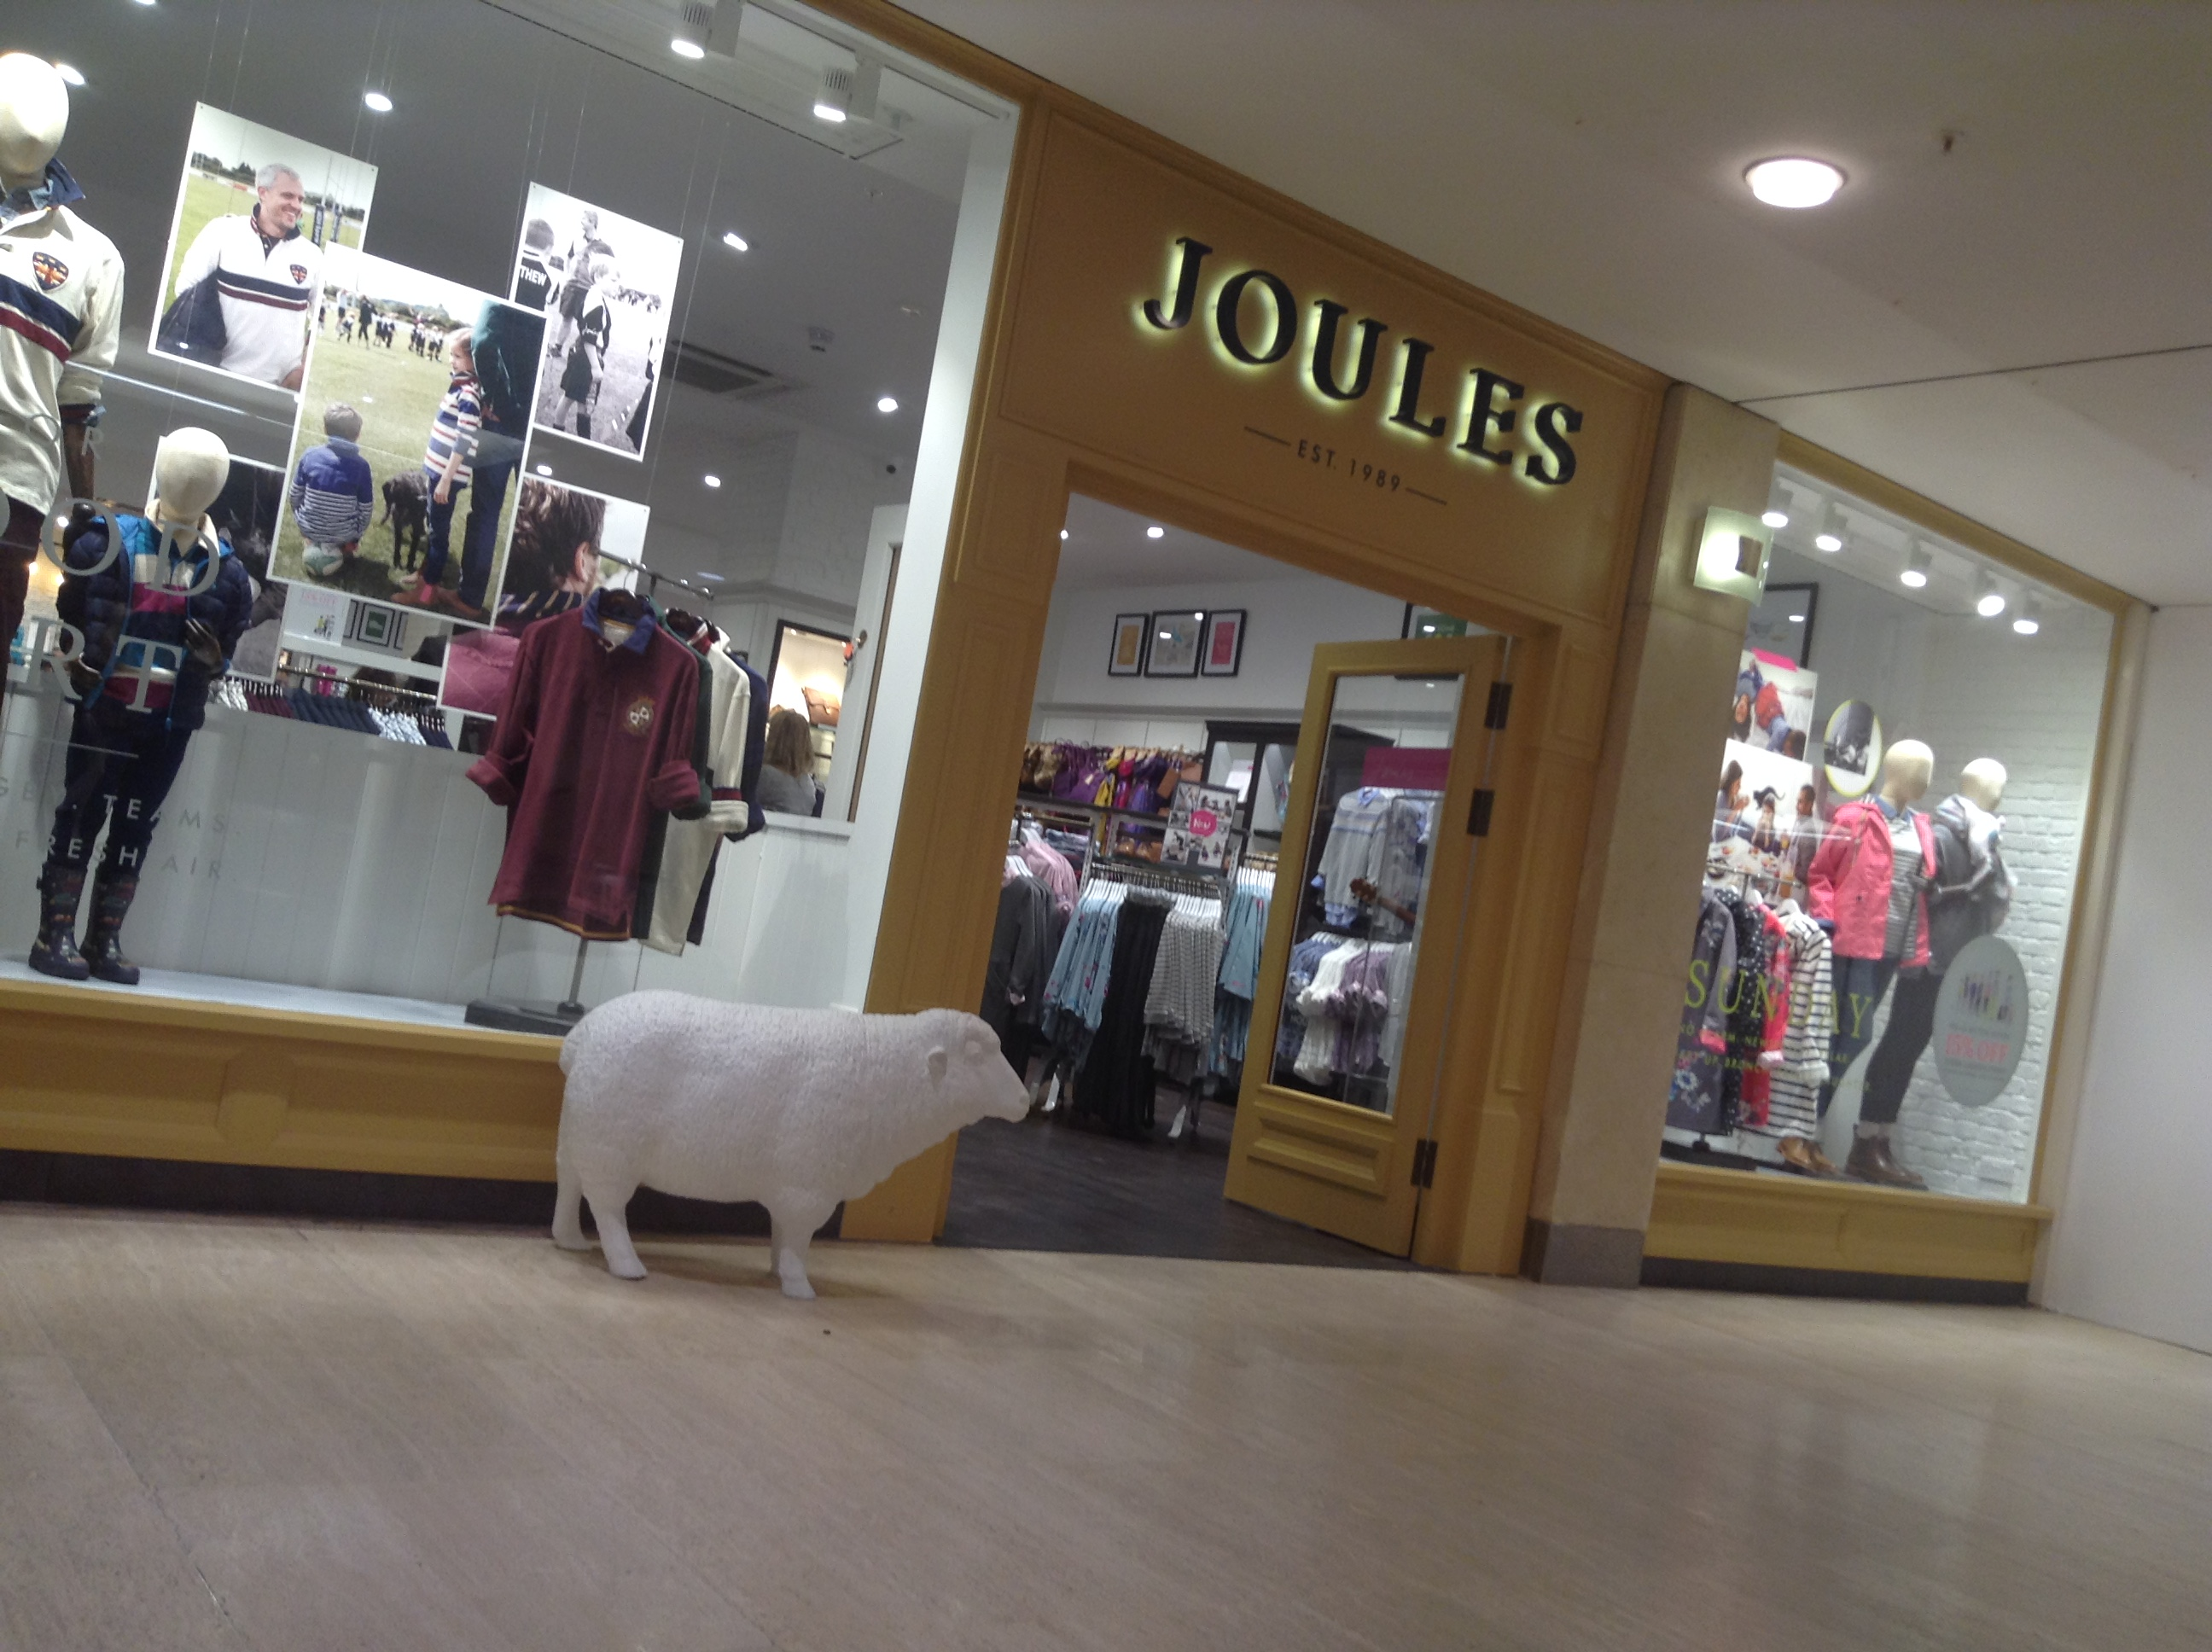 Joules likes to reward customers who follow the store on social media with special discounts and coupon codes. Follow Joules on Facebook, Instagram, Pinterest, and Twitter for your chance to be rewarded. Check out the New In section to shop for items that have just recently been added to the Joules .